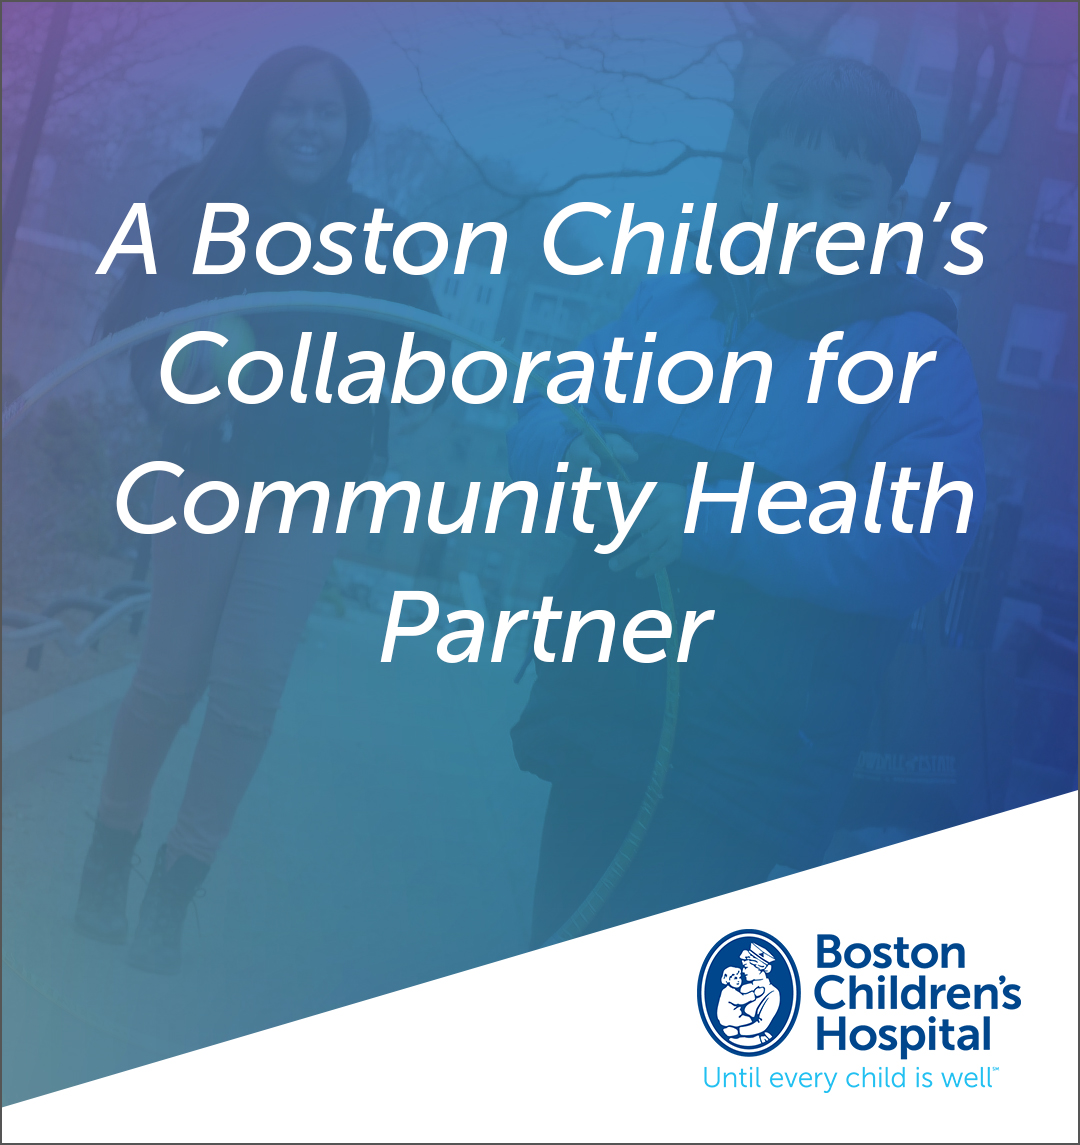 CFCS Receives $225,000 Grant from Boston Children's Hospital for Permanency Work